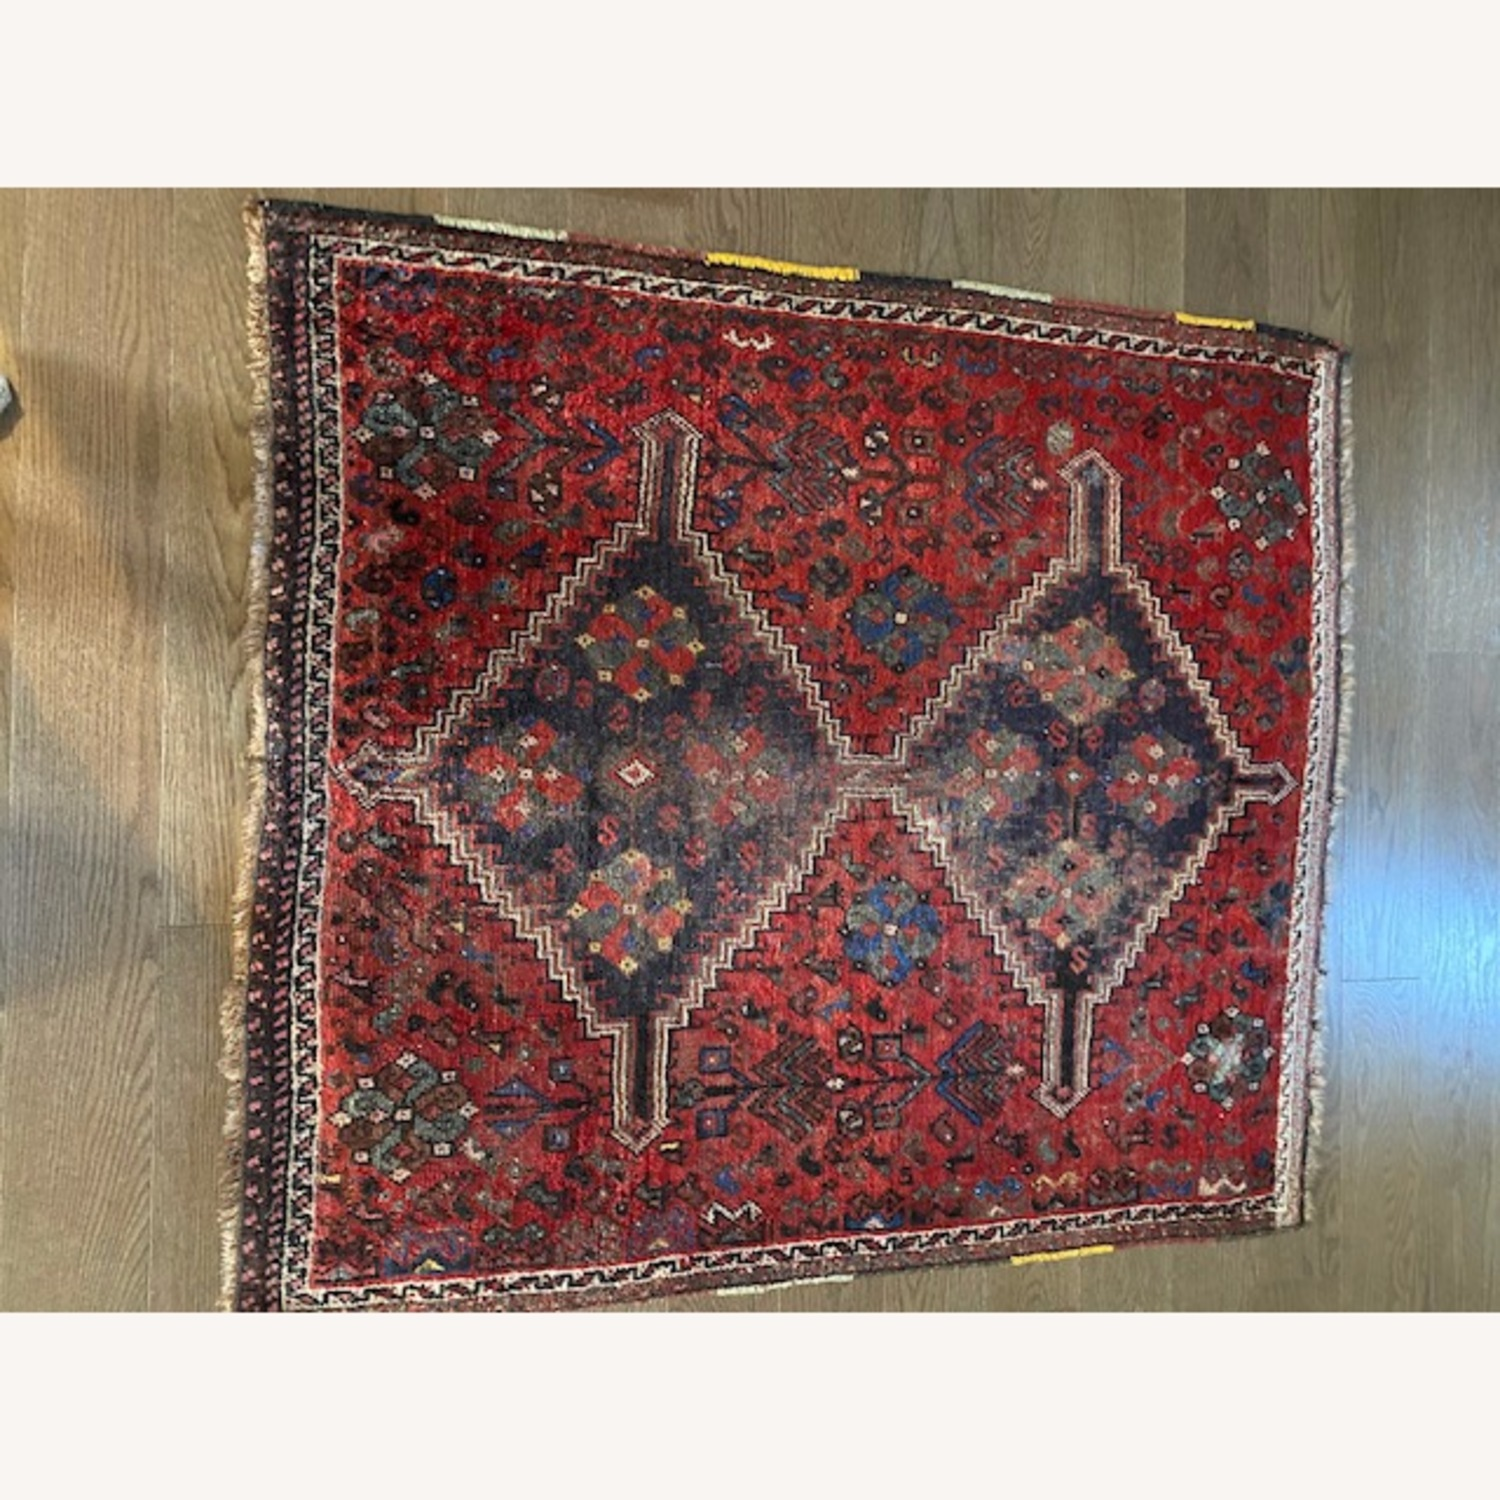 Vintage Persian Hand-knotted Wool Tribal Rug - image-4